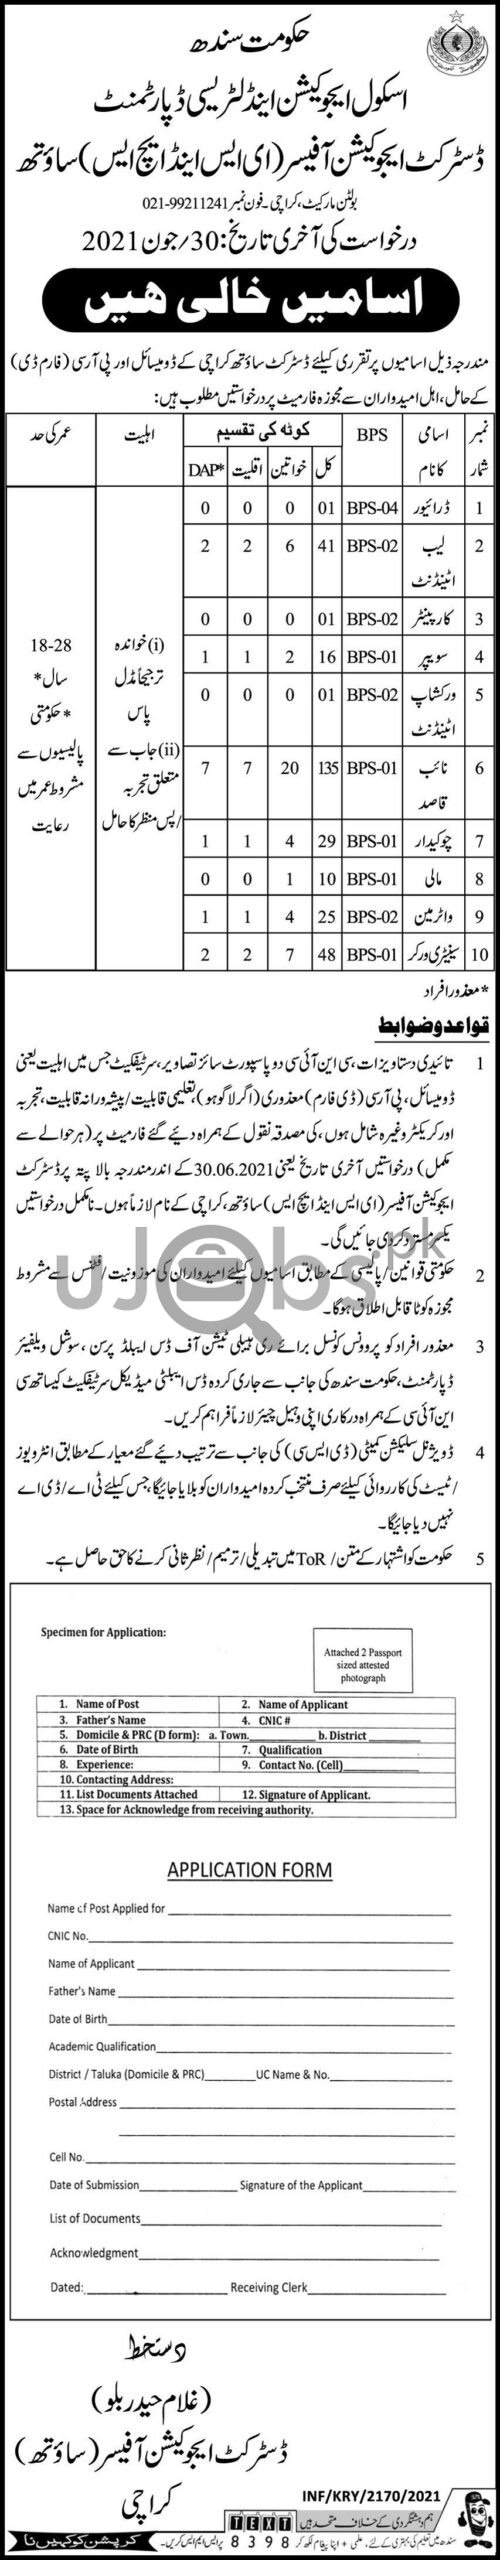 Sindh Government School Education and Literacy Department Jobs 2021 in Karachi